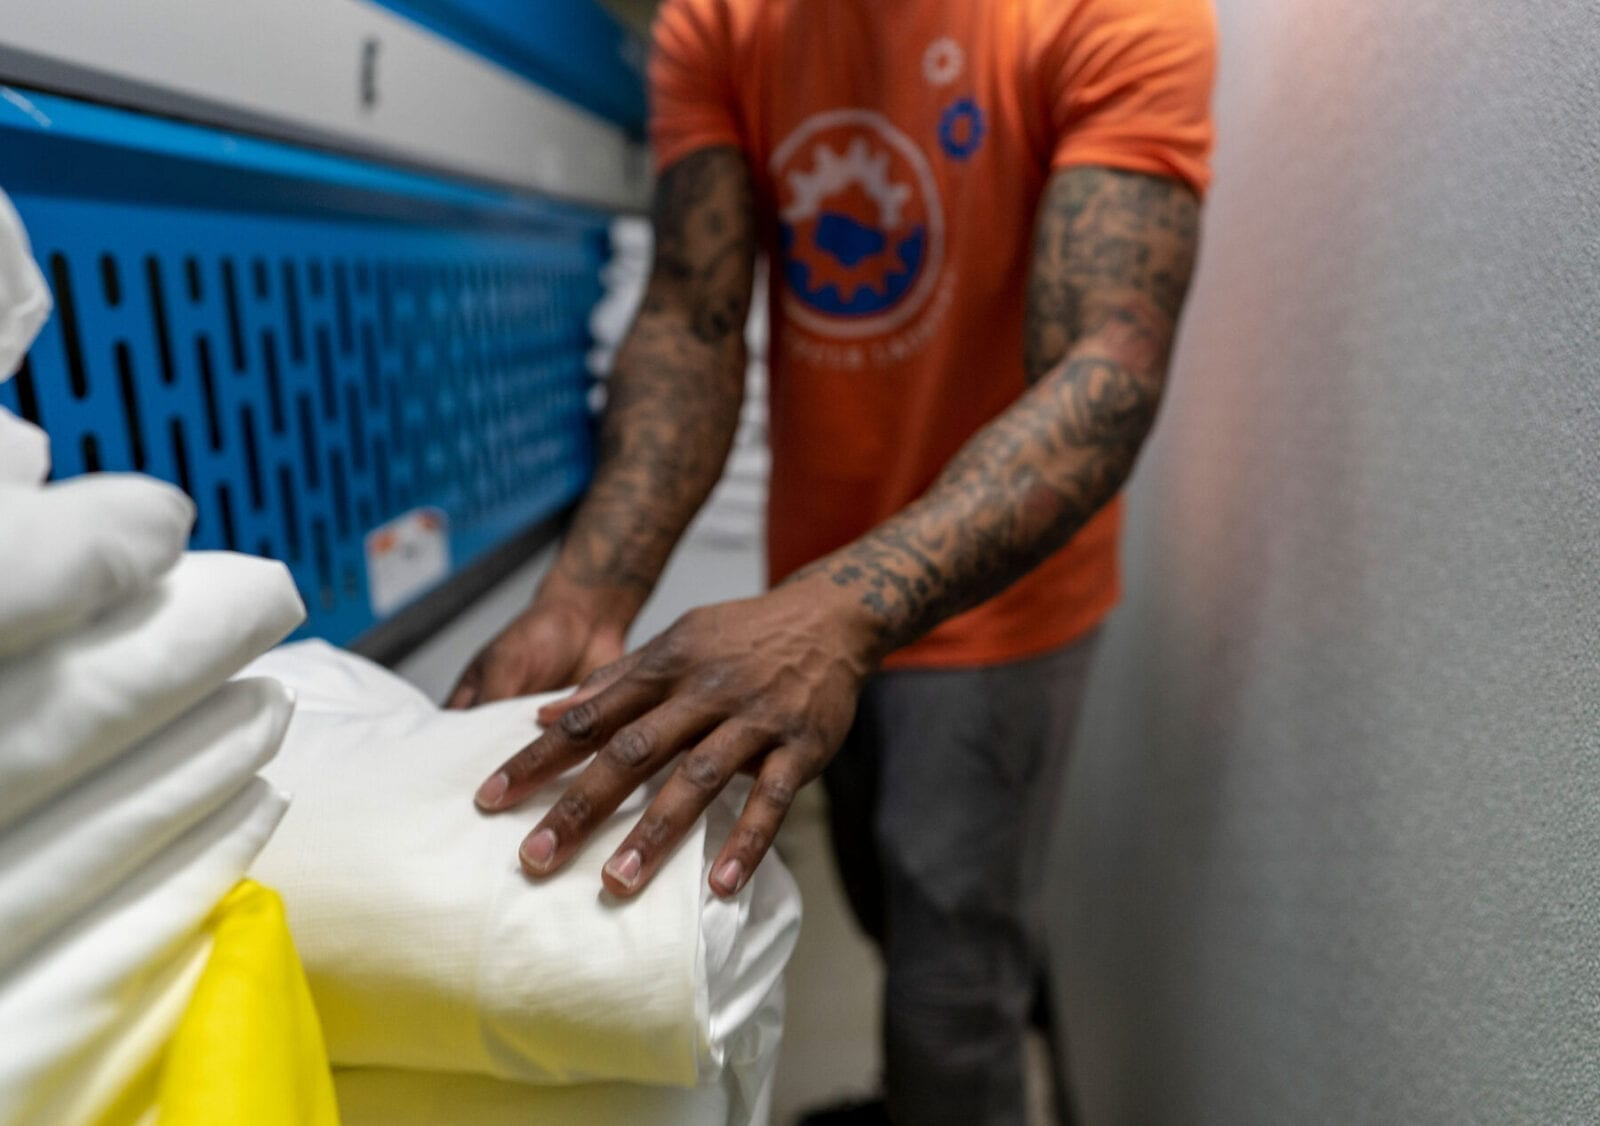 Postindustrial, Javis Williams folds sheets at Wash Cycle Laundry in Philadelphia. He began working at Wash Cycle several weeks ago after being released from jail. Photo by Jessica Kourkounis